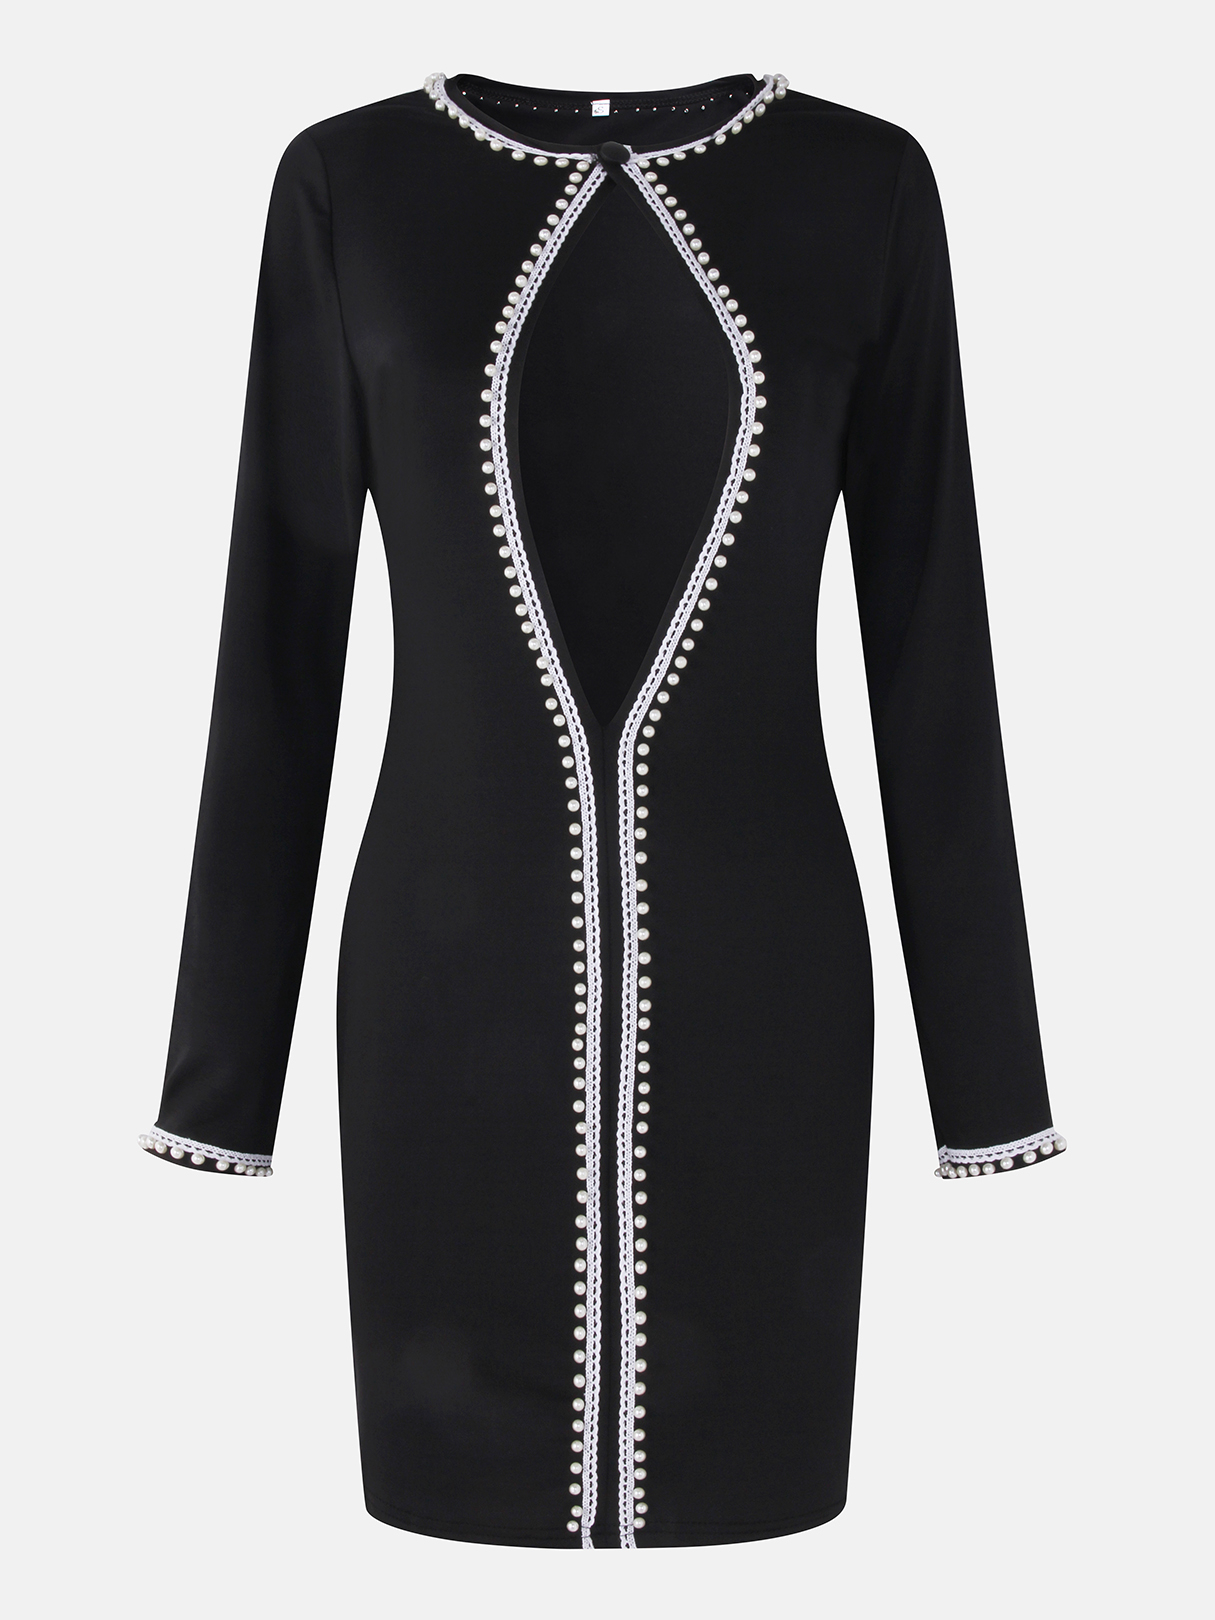 все цены на Black Sexy Cut Out Front Round Neck Long Sleeves Mini Dress